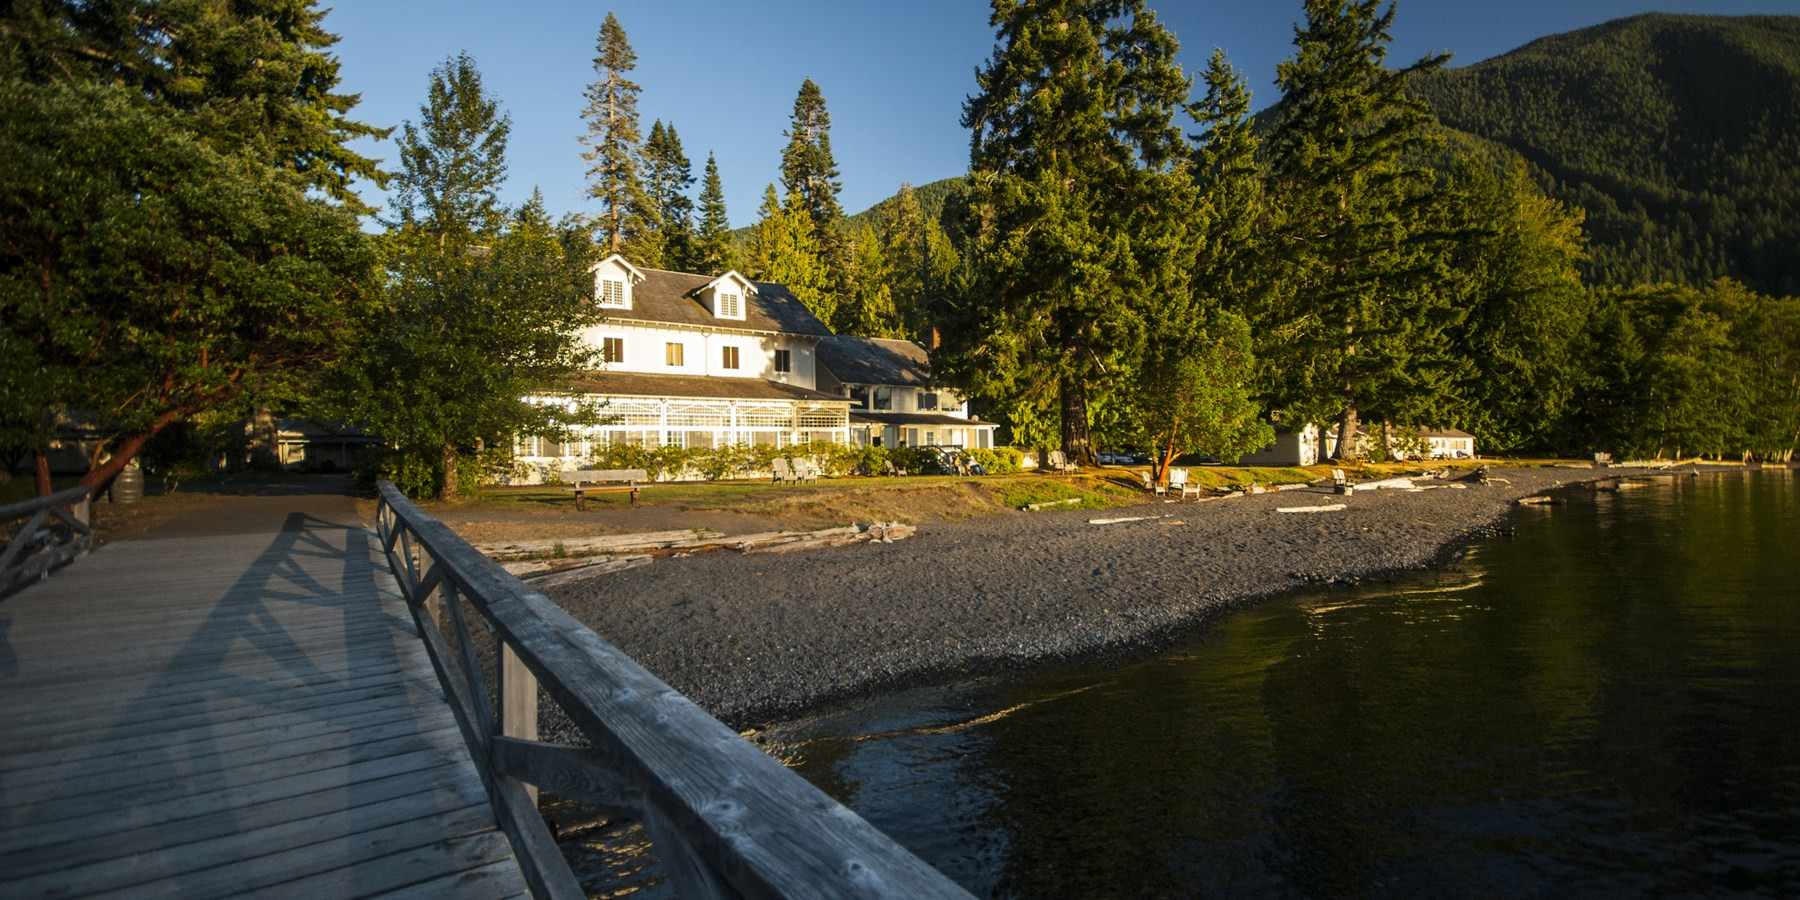 5 reasons to make the trip to lake crescent outdoor project for Log cabin resort lago crescent wa